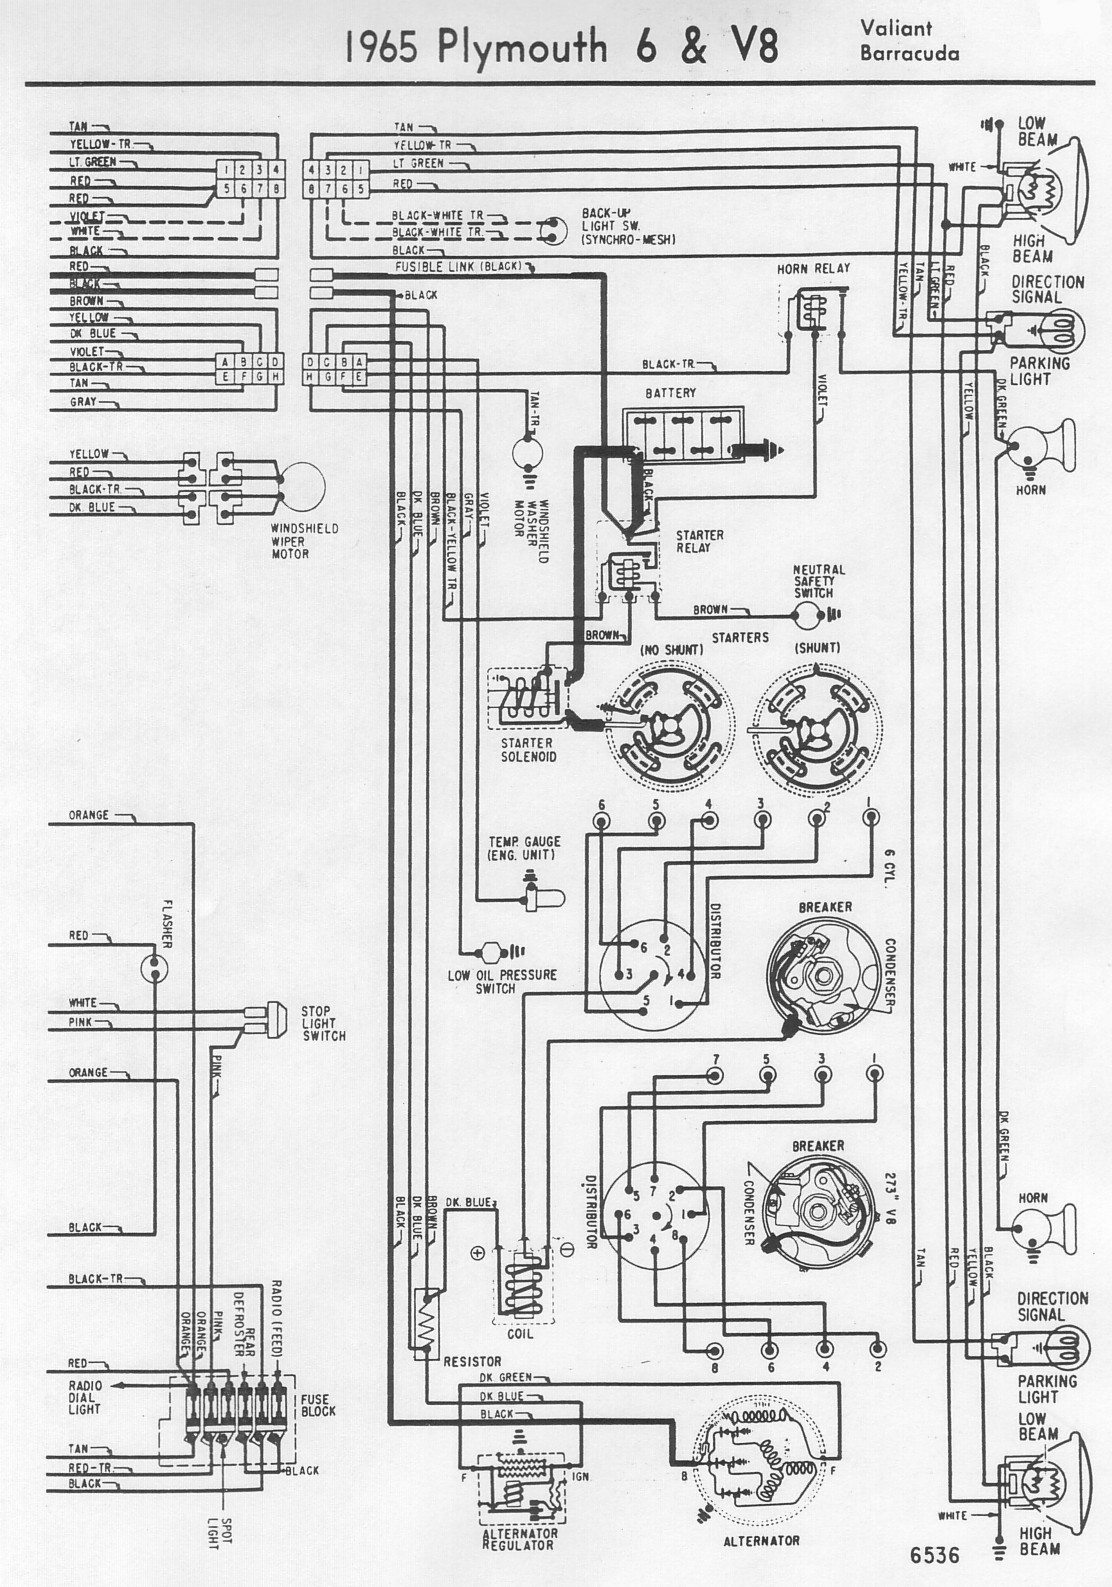 65ValiantBarracudaB wiring diagrams 1968 Ford Falcon Wiring Diagram at panicattacktreatment.co